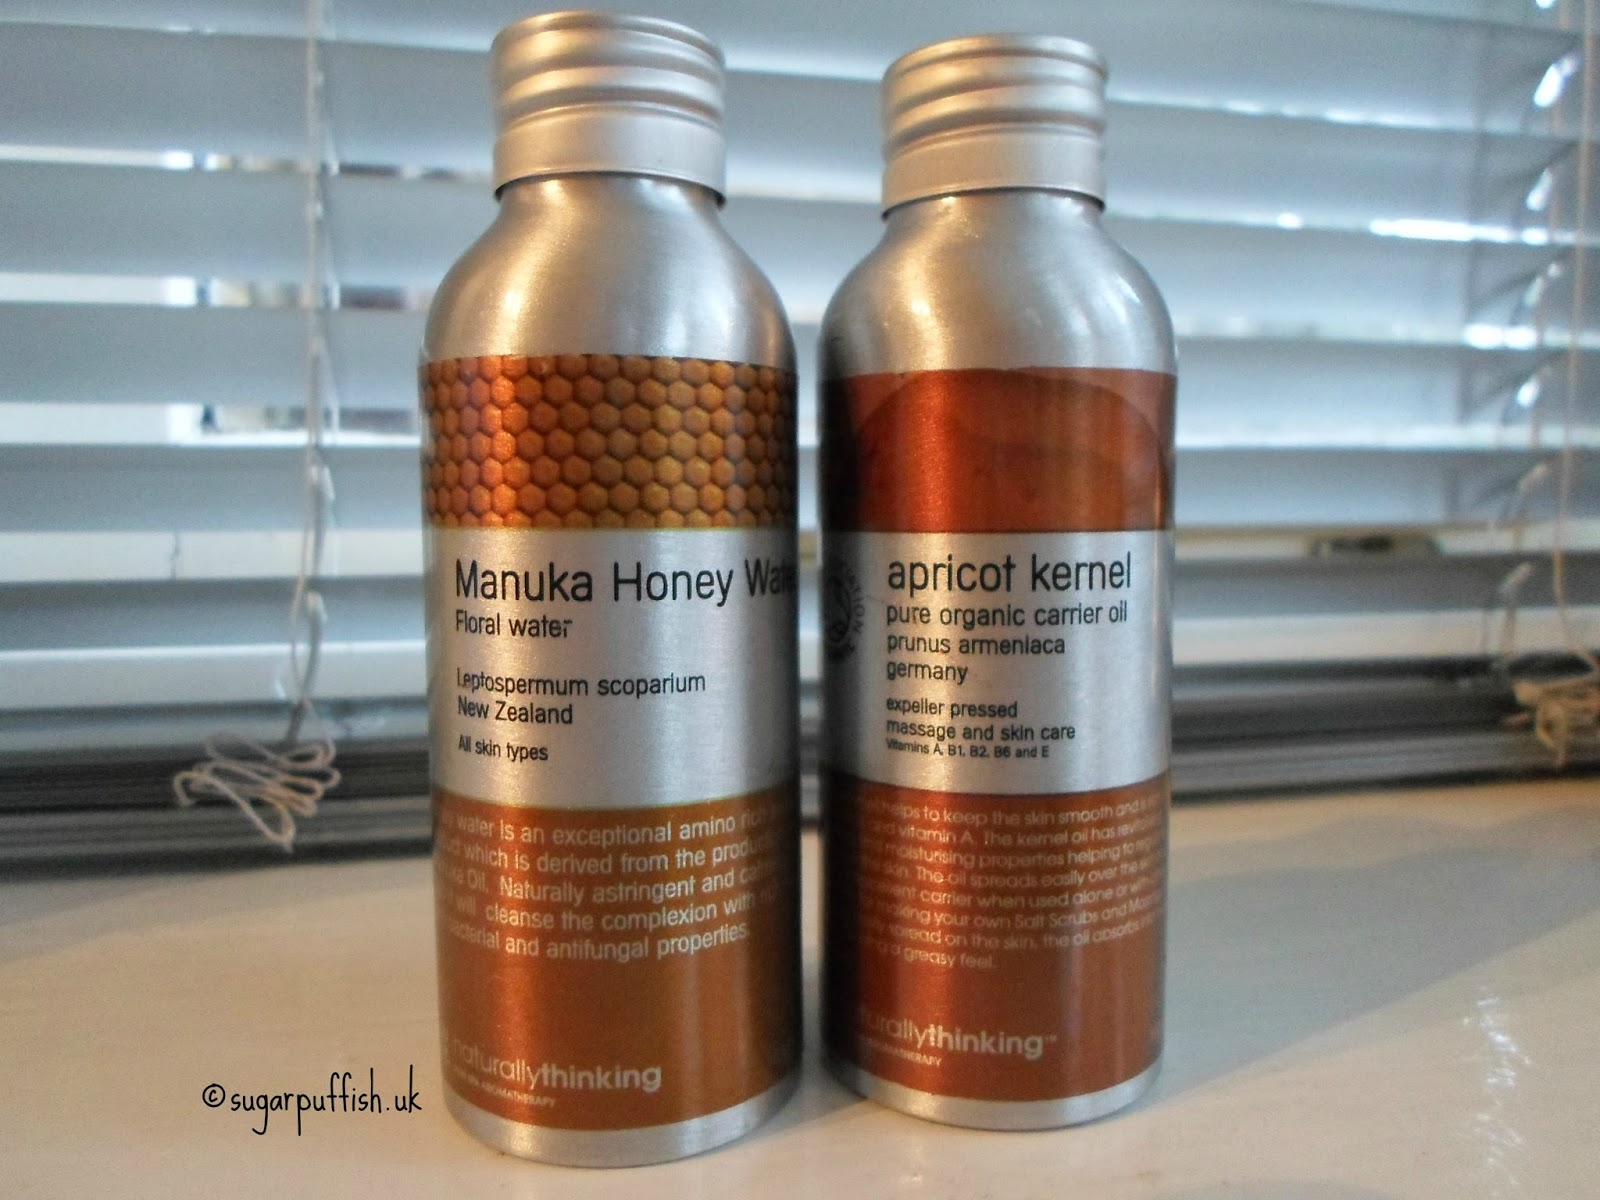 Manuka Floral Water and Apricot Kernel Oil